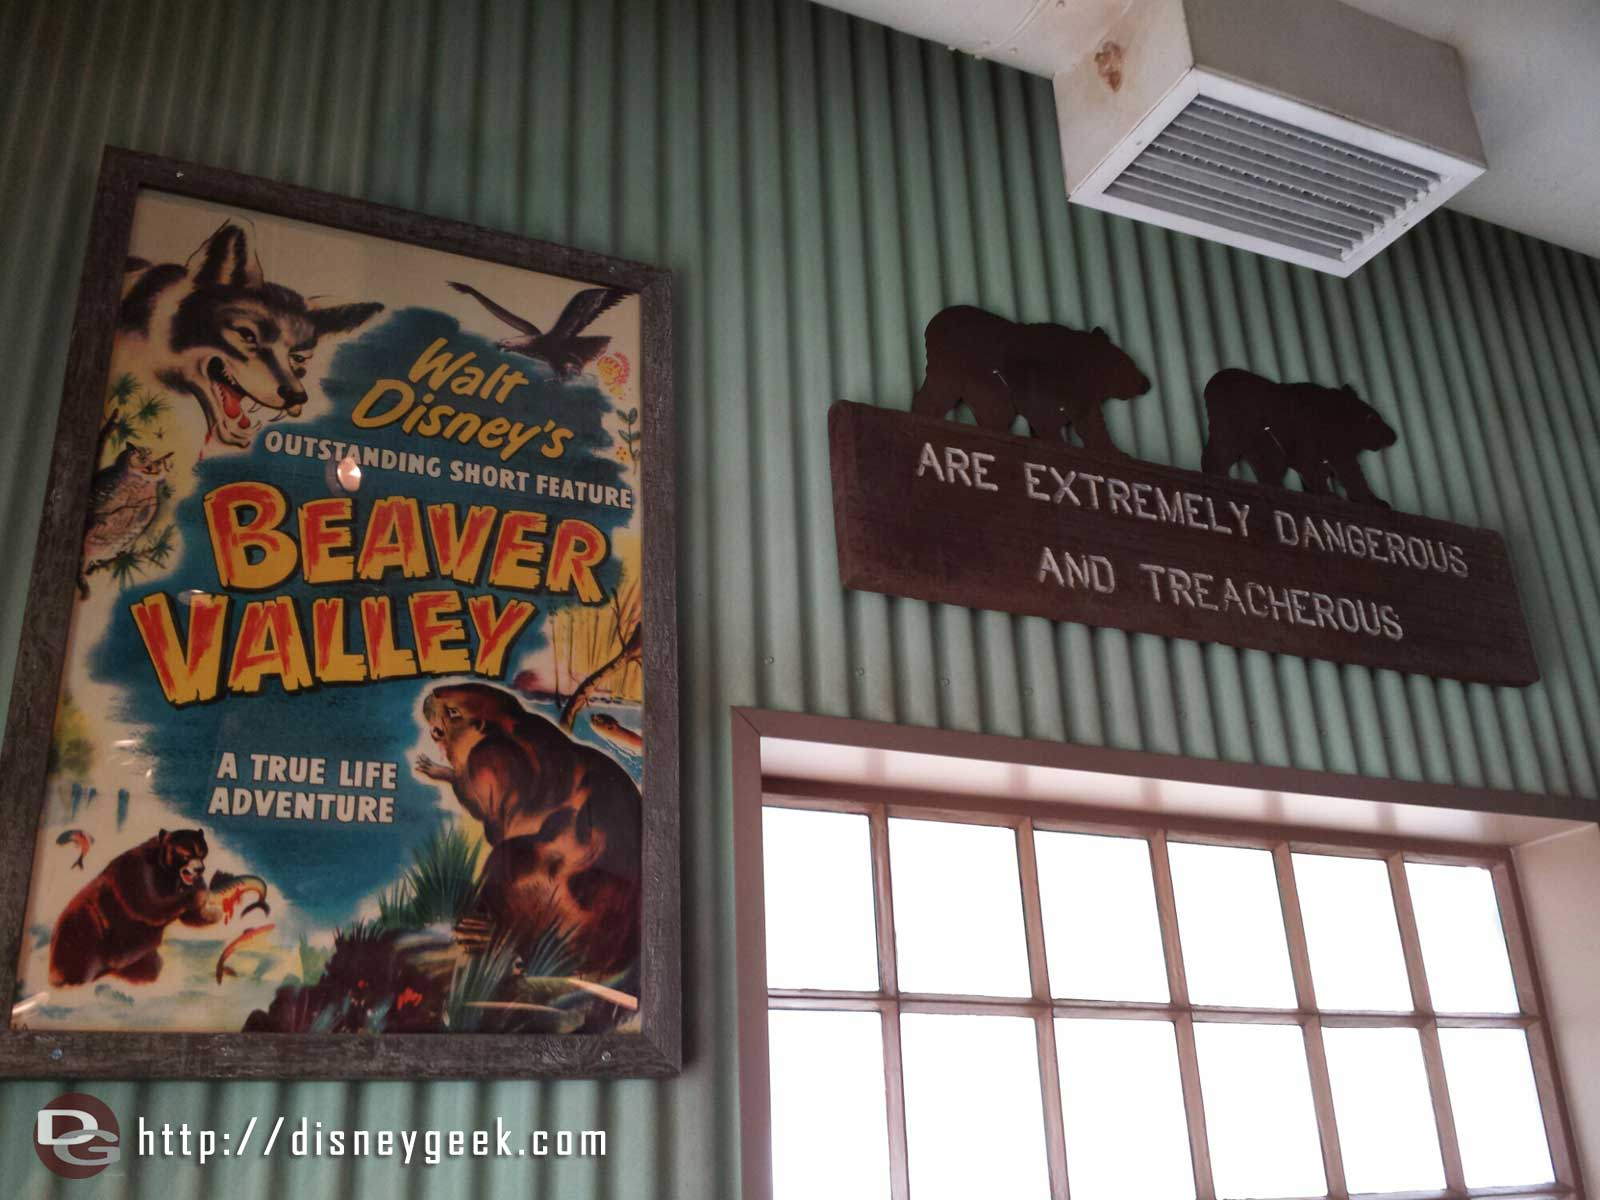 A true life adventure movie poster inside Smokejumpers Grill